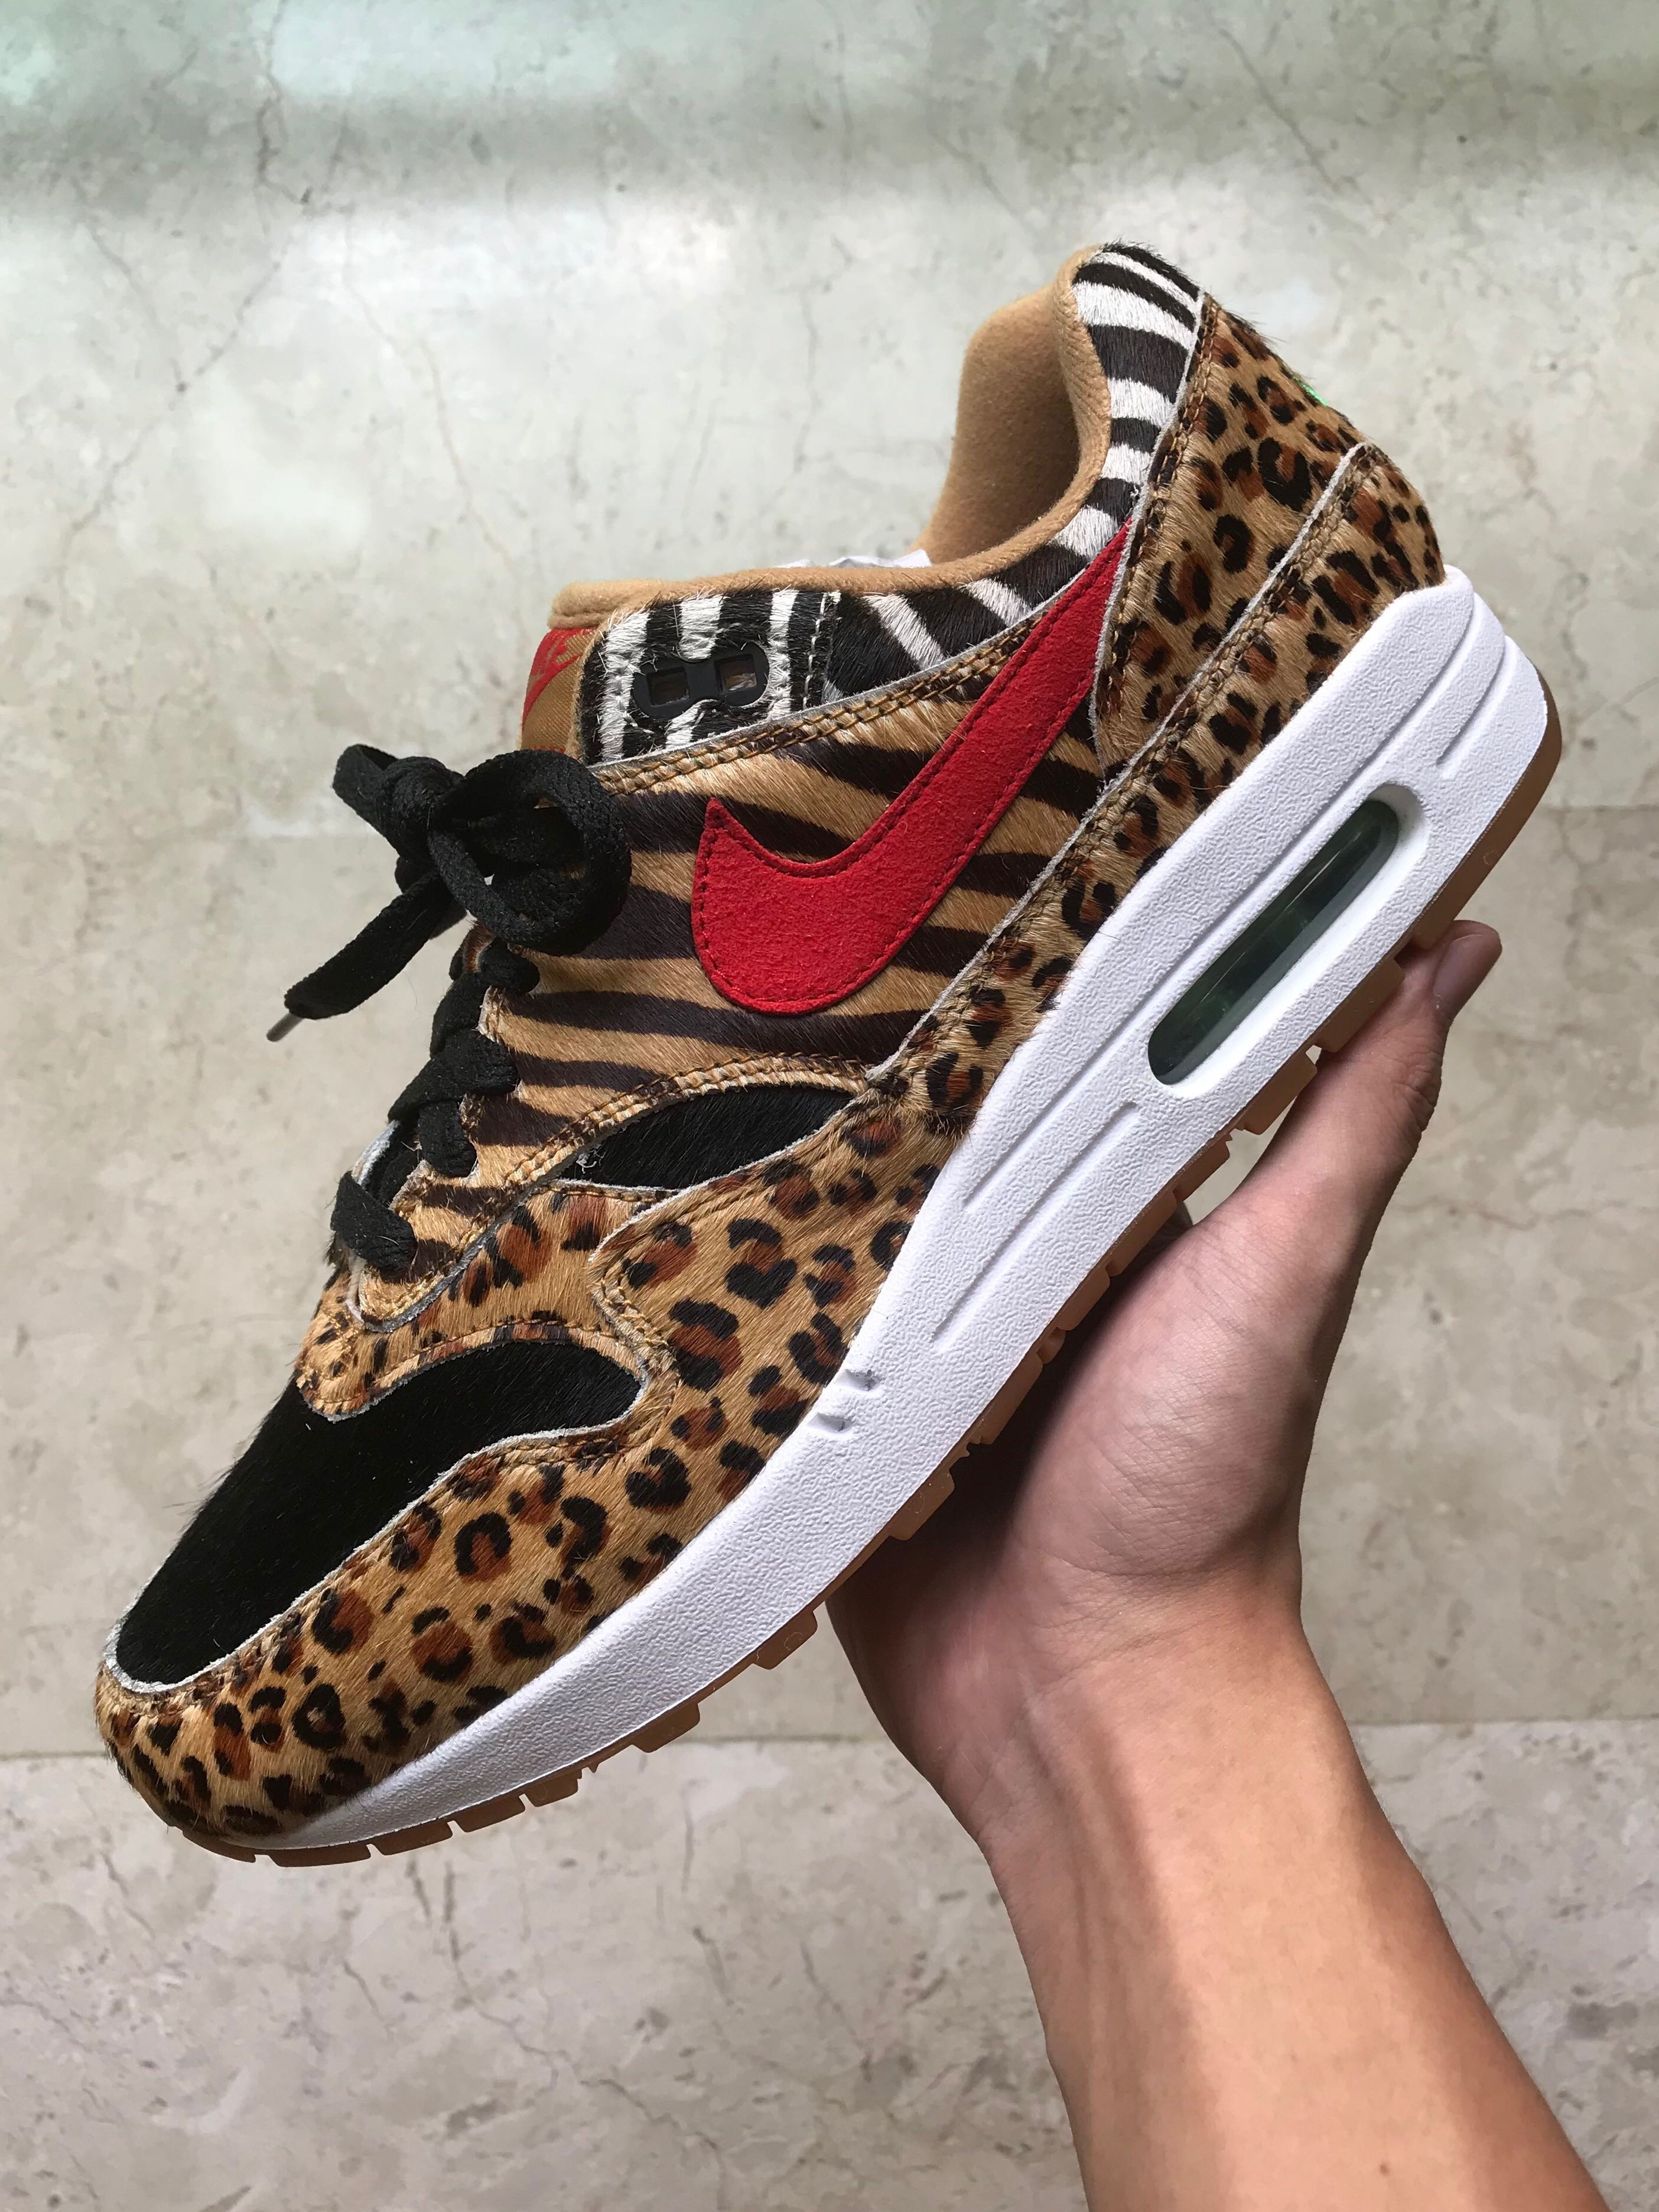 timeless design 5aded f36b5 ... buy us 9 nike air max 1 atmos animal pack 2.0 mens fashion footwear  sneakers on